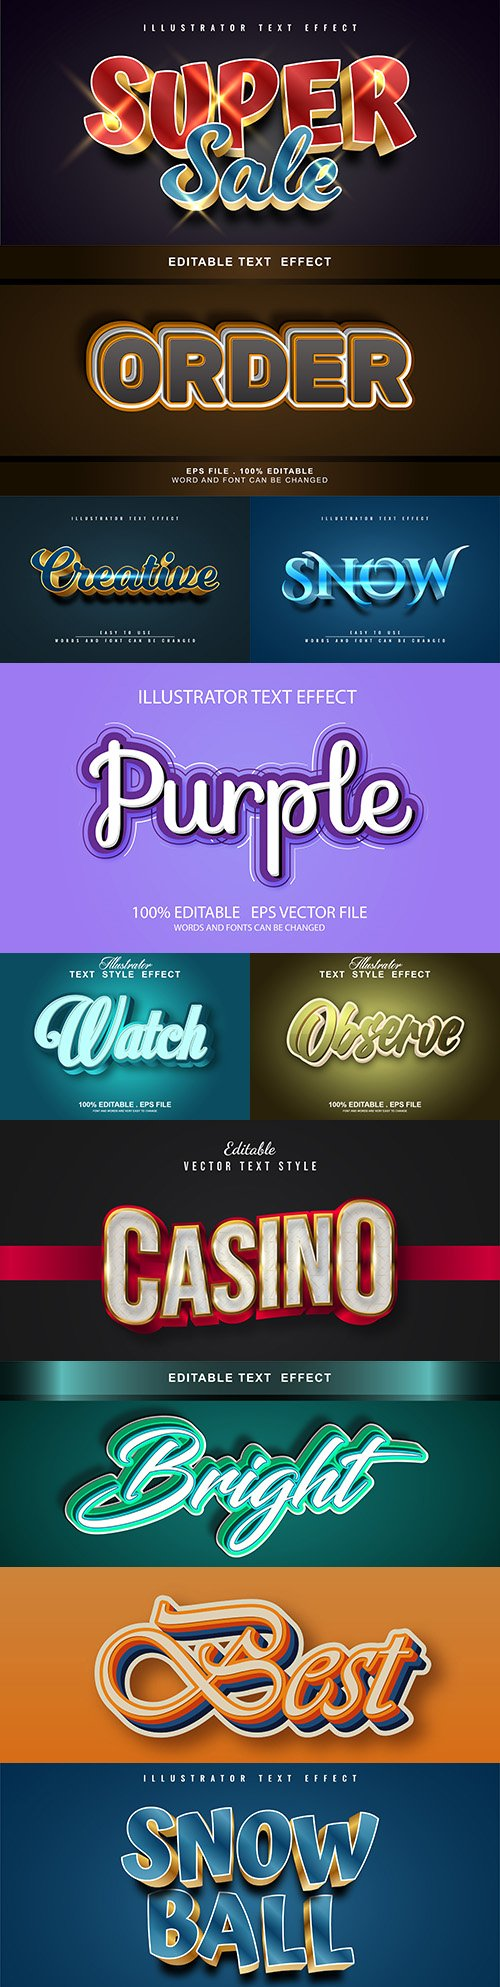 Editable font and 3d effect text design collection illustration 13